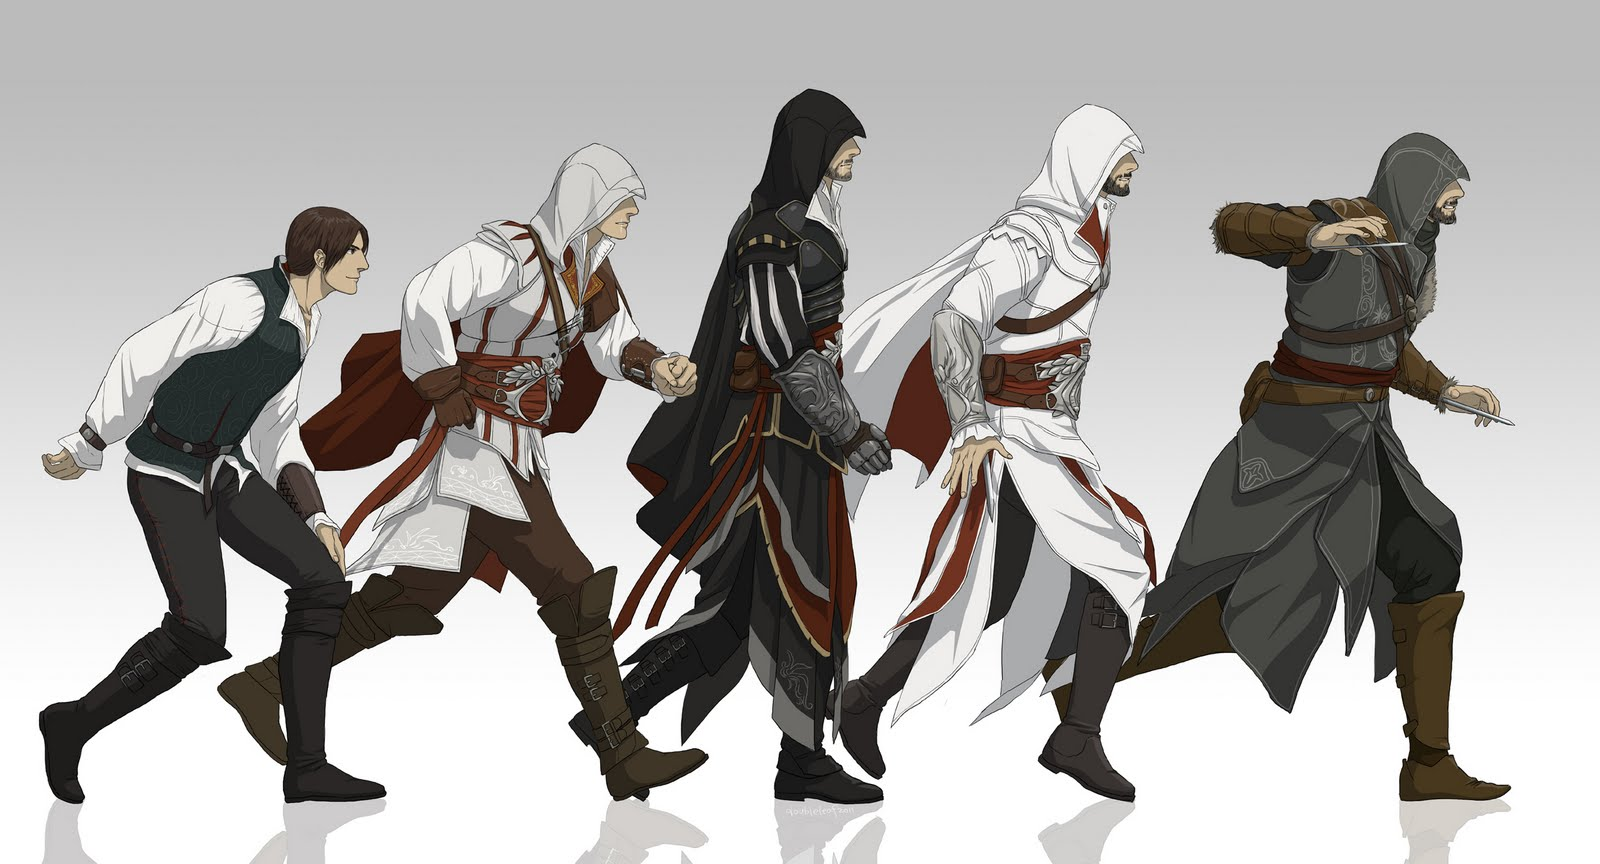 assassin's creed and evolution image